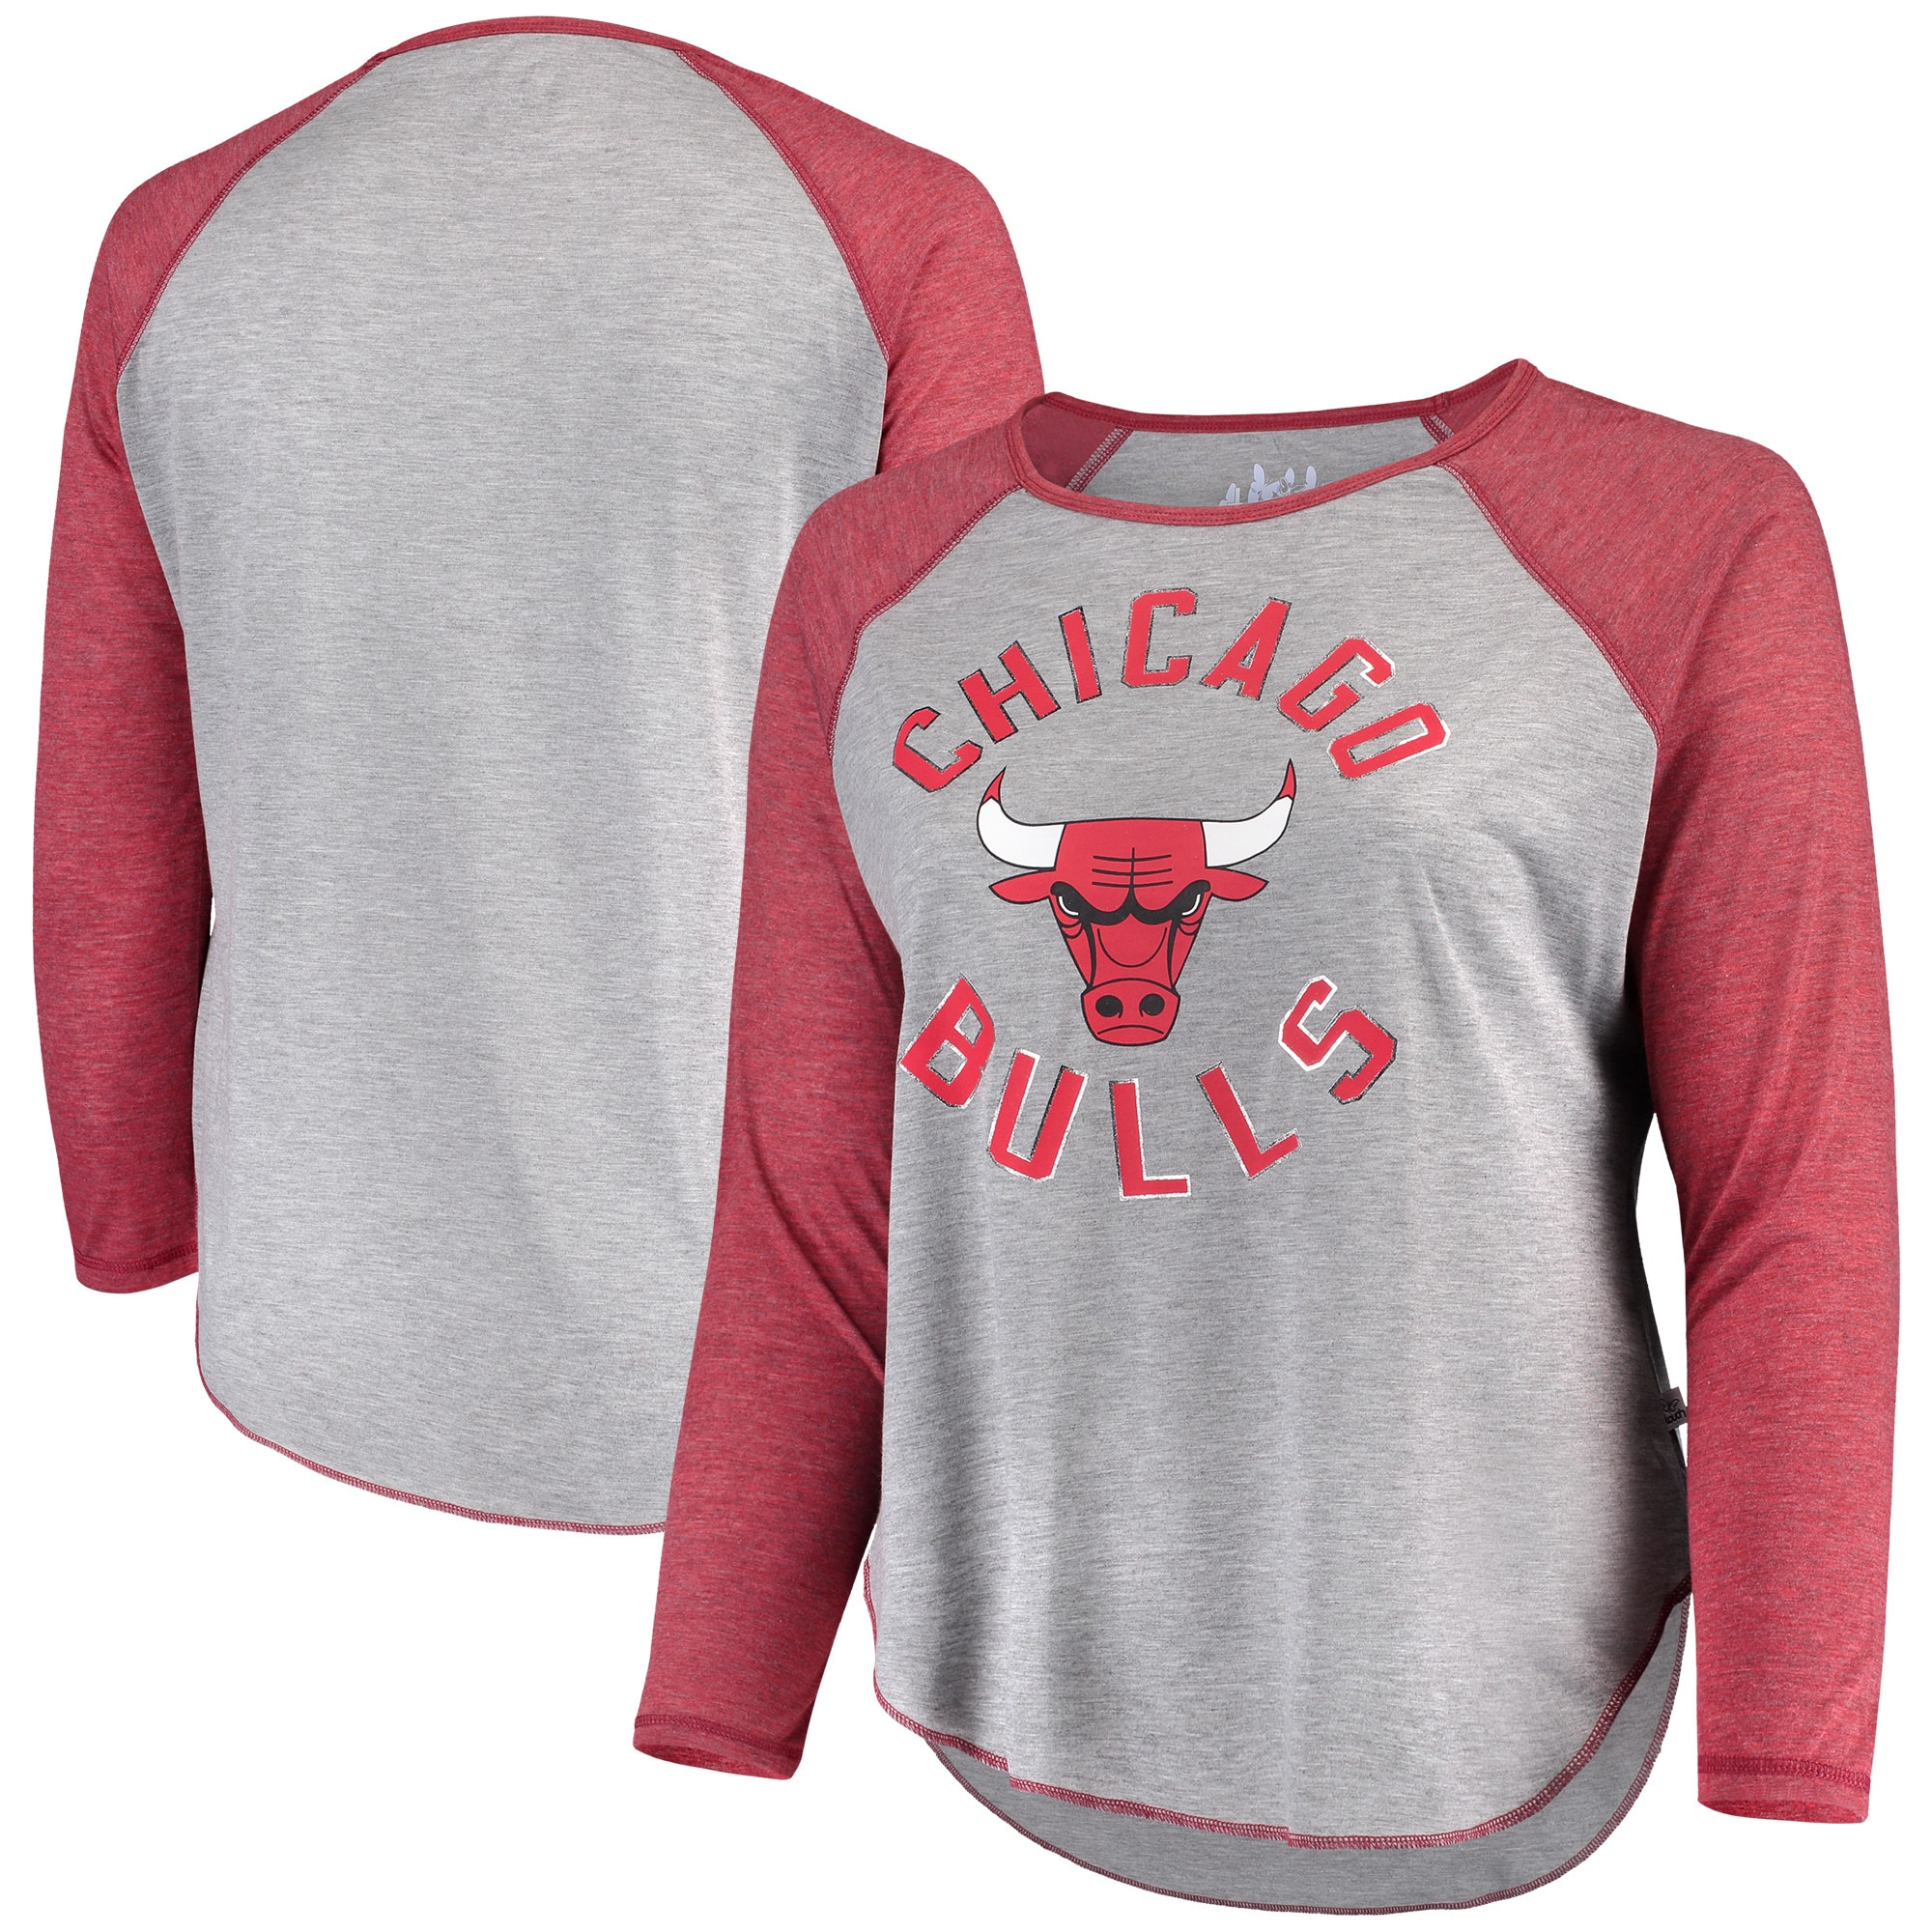 Chicago Bulls Touch by Alyssa Milano Women's Plus Size Line Drive Raglan Long Sleeve T-Shirt - Heathered Gray/Red